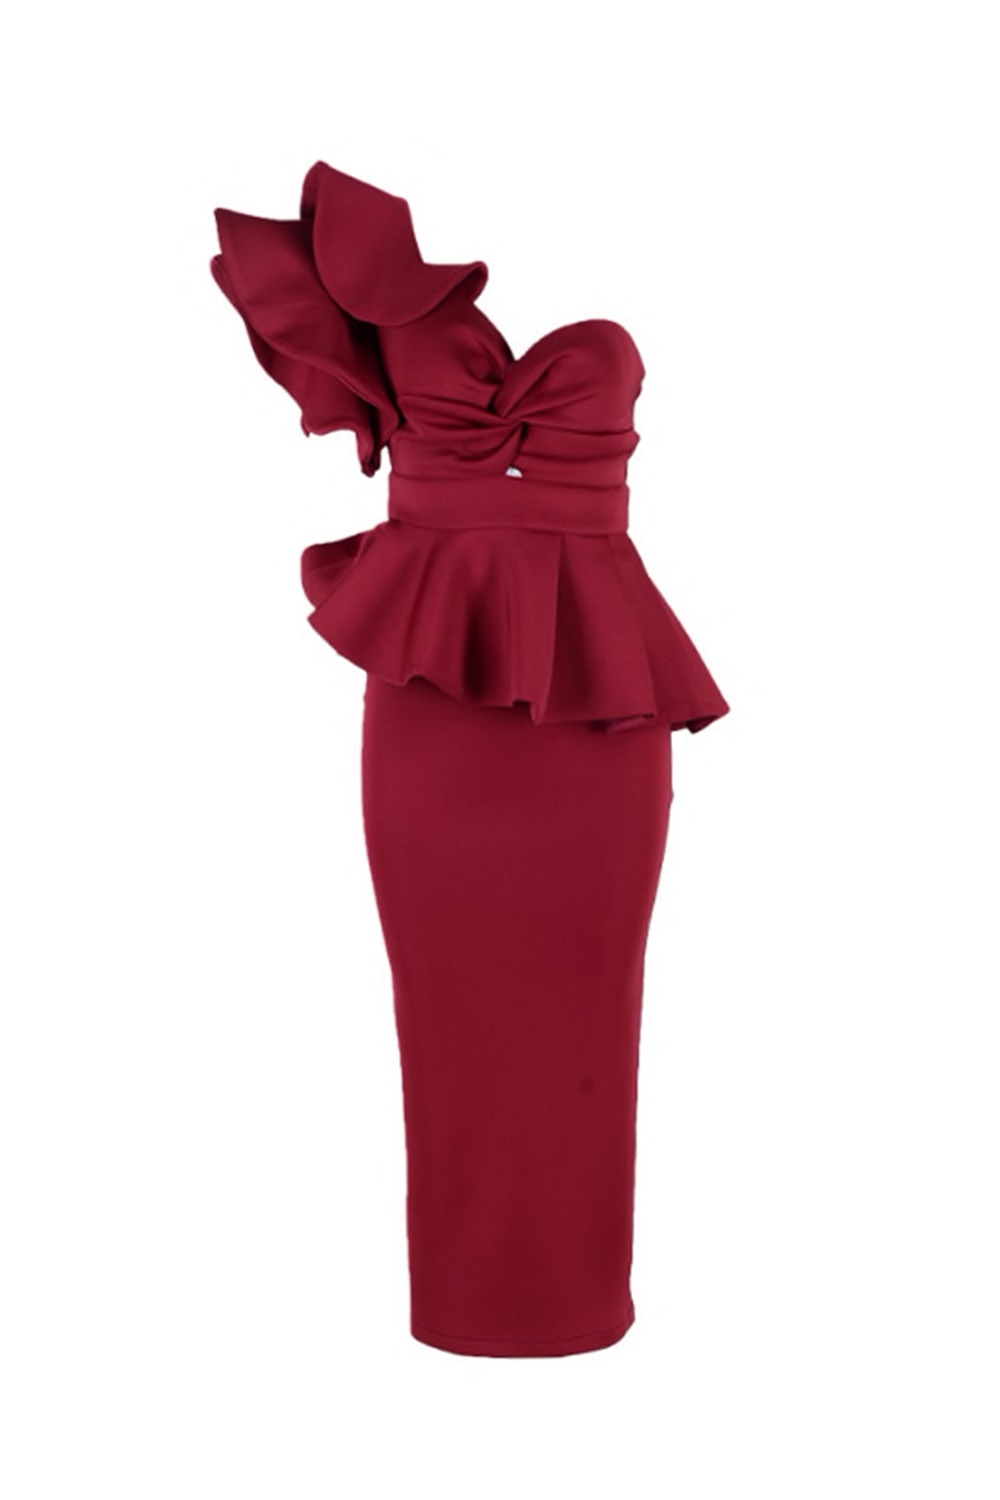 Adele Dress - Burgundy